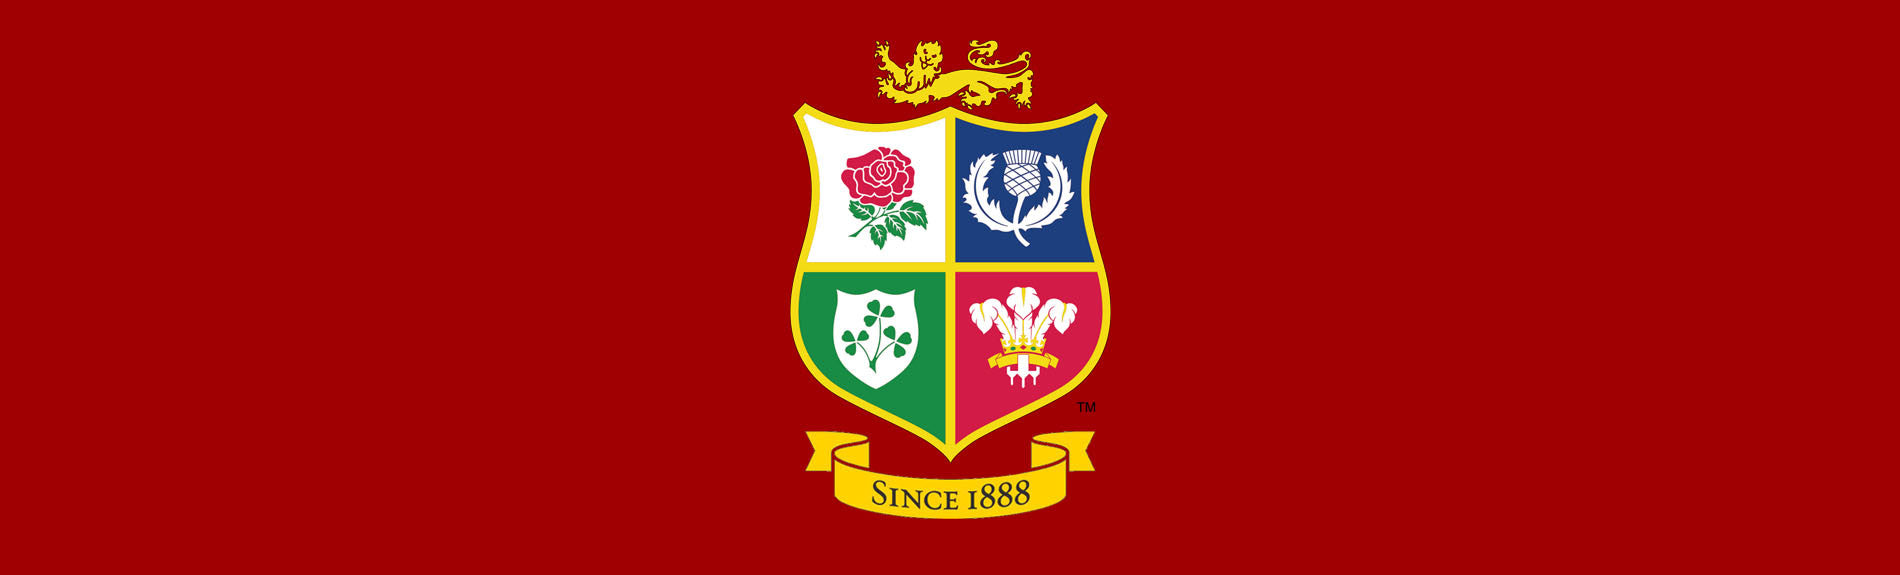 A new look for the 2017 British & Irish Lions